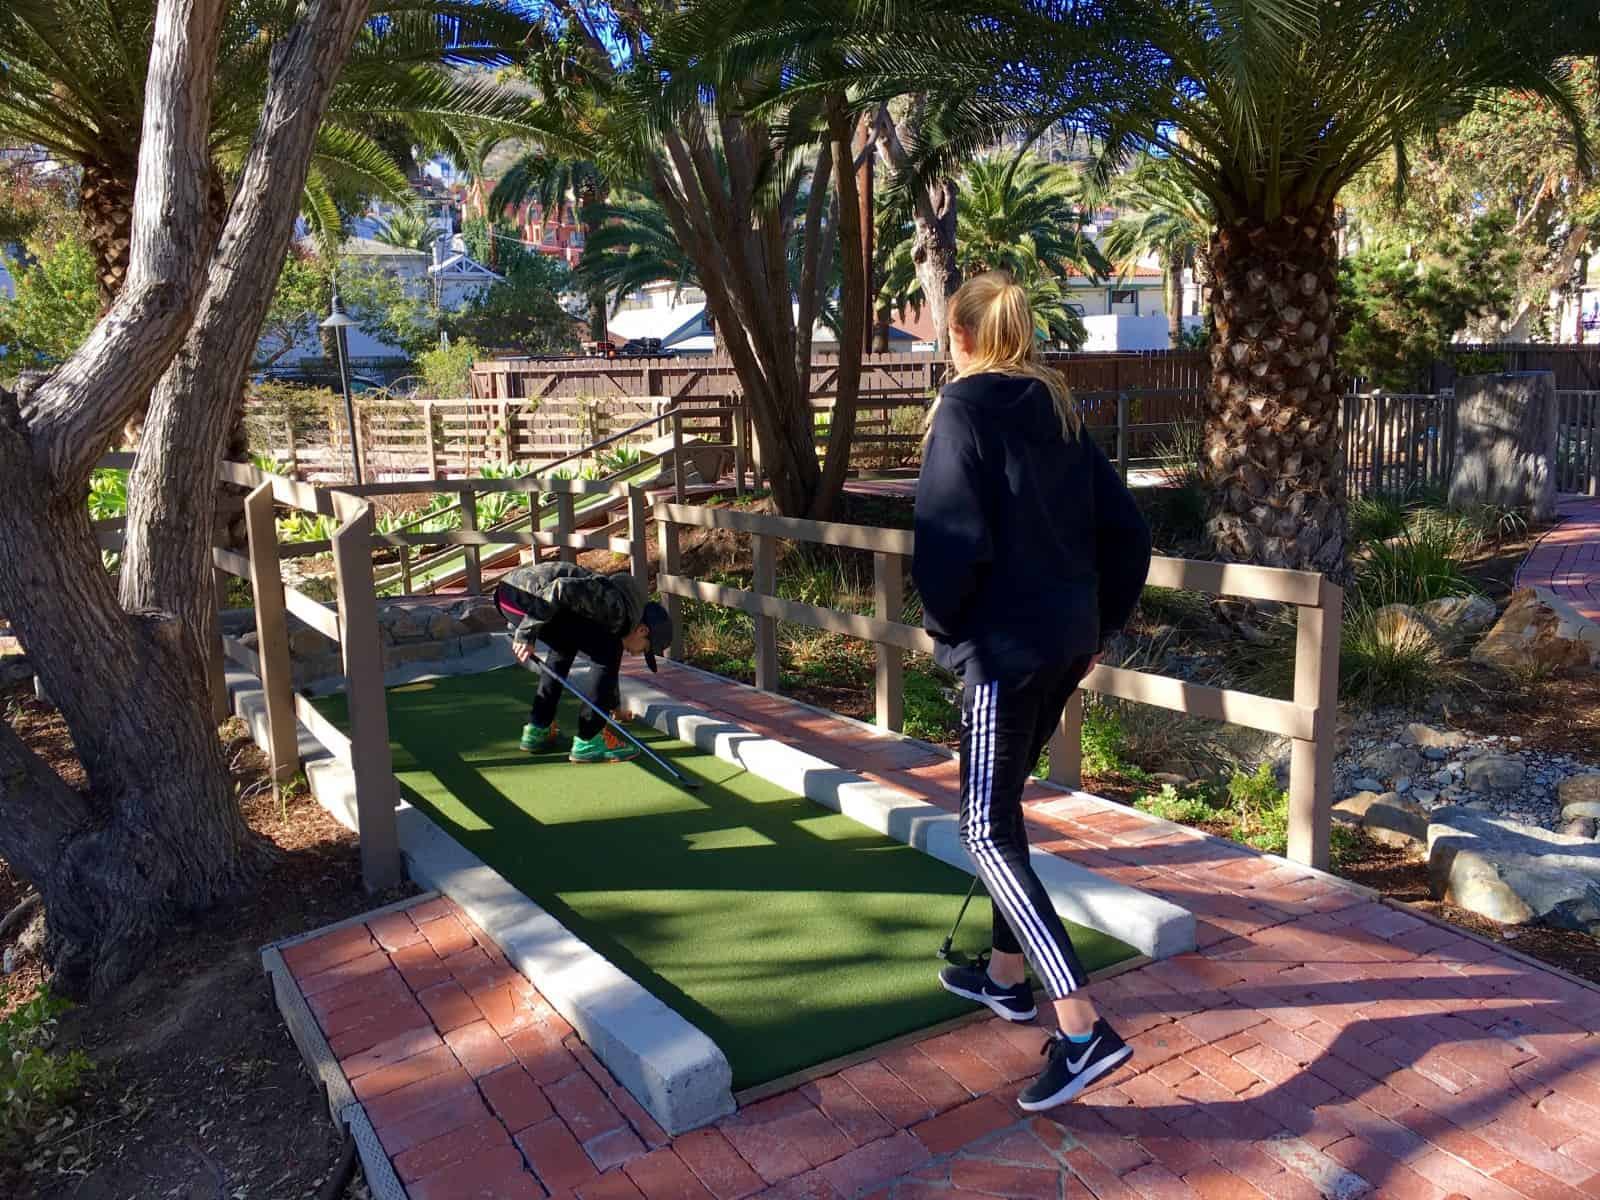 Catalina Island Garden Golf